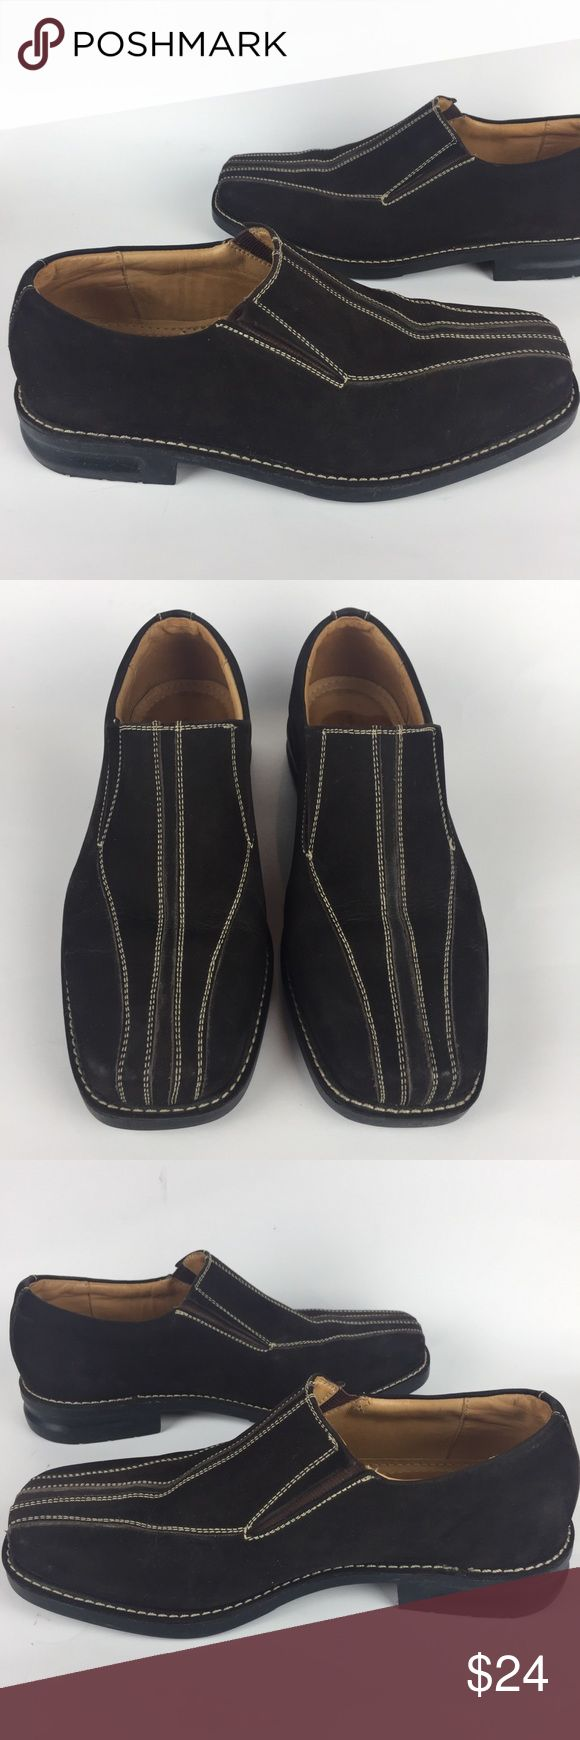 SANDRO MOSCOLONI suede loafers These leather suede loafers with top stitching are in like new condition!     (SA14) Sandro Moscoloni Shoes Loafers & Slip-Ons